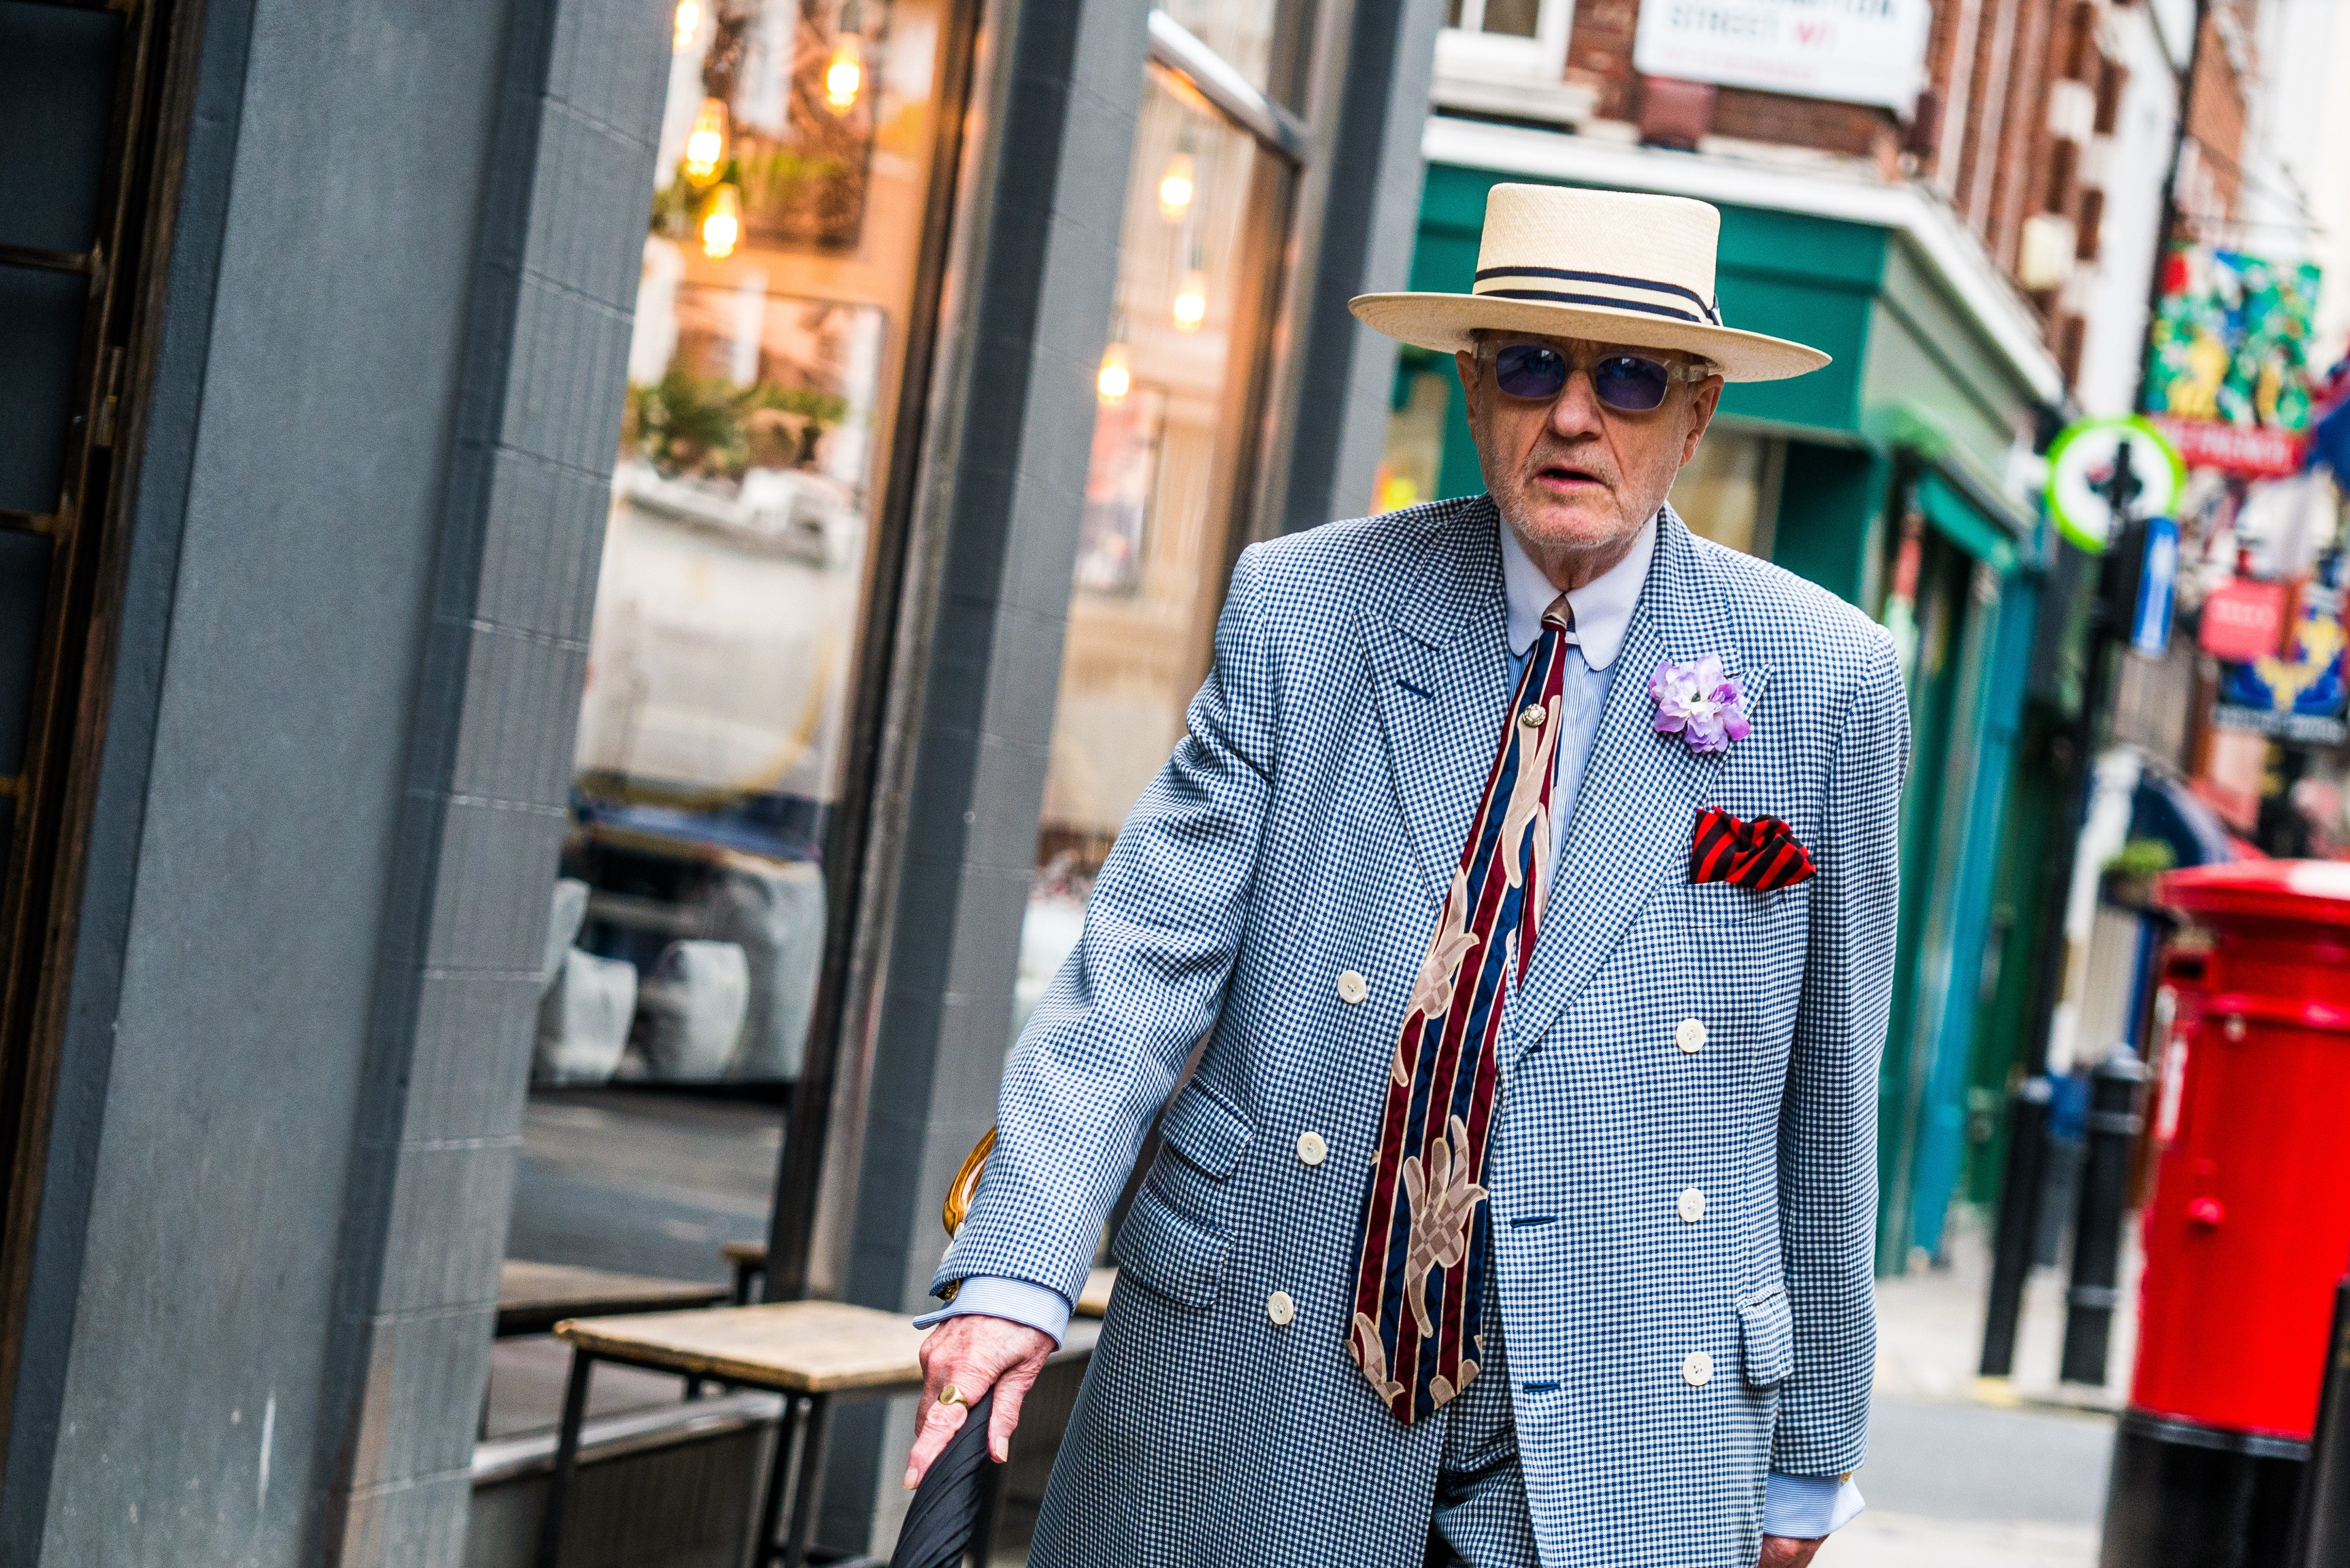 Older men wear what they want, mostly